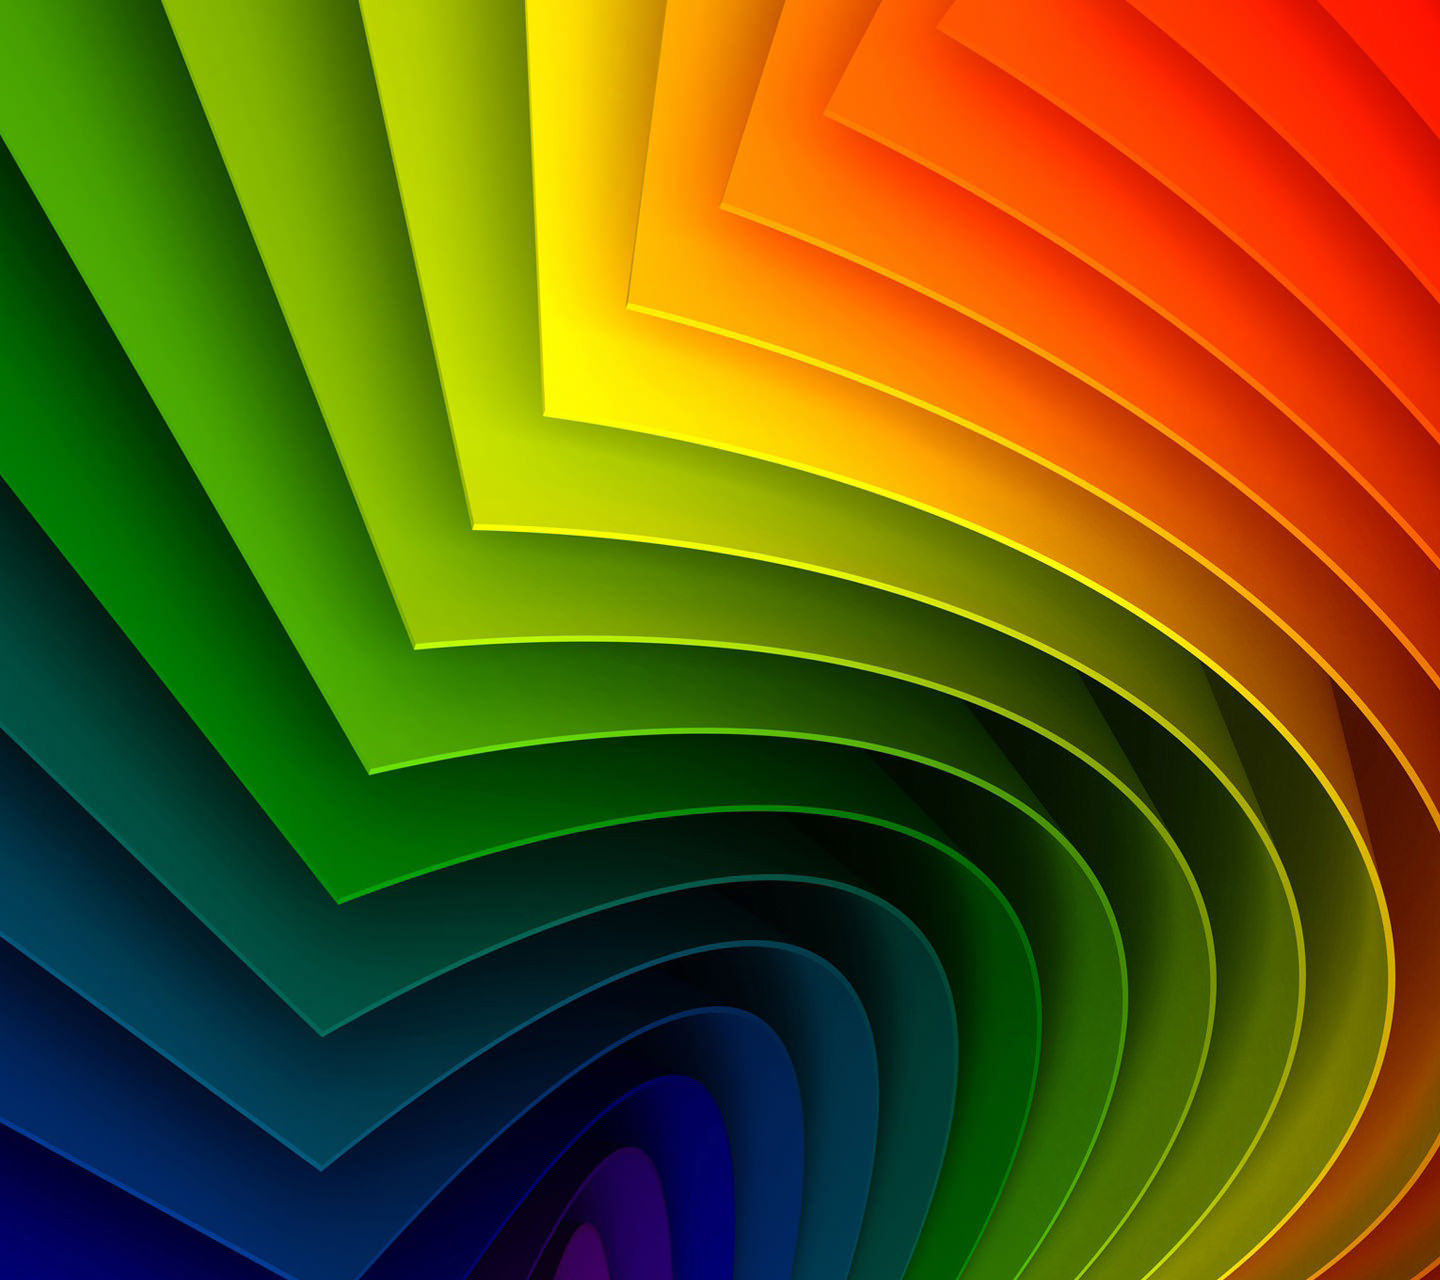 Awesome Colorful Wallpaper   Alees Blog 1440x1280